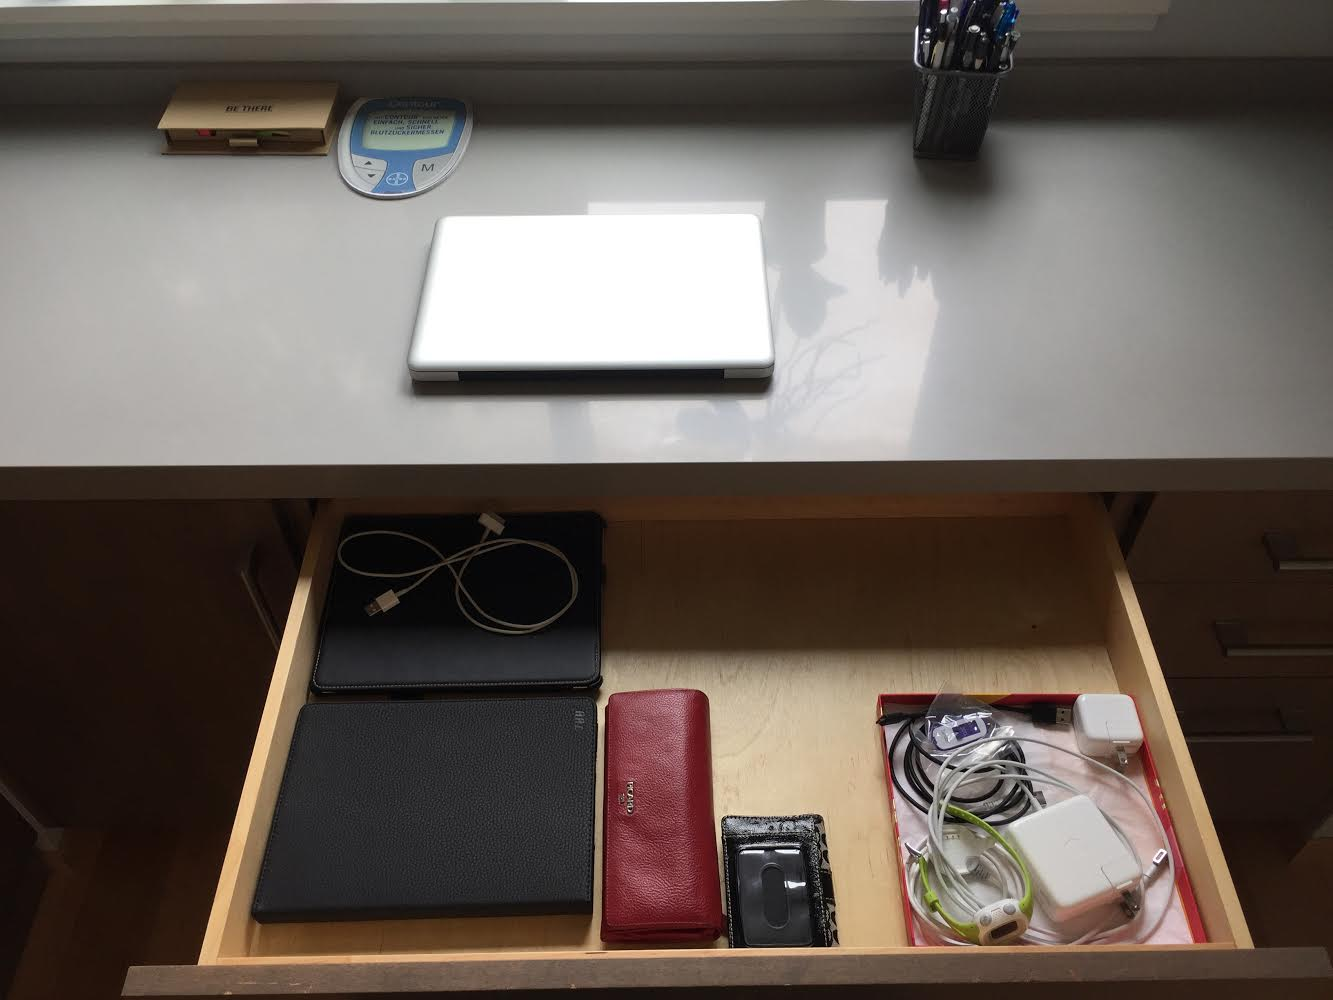 Drawer2 after